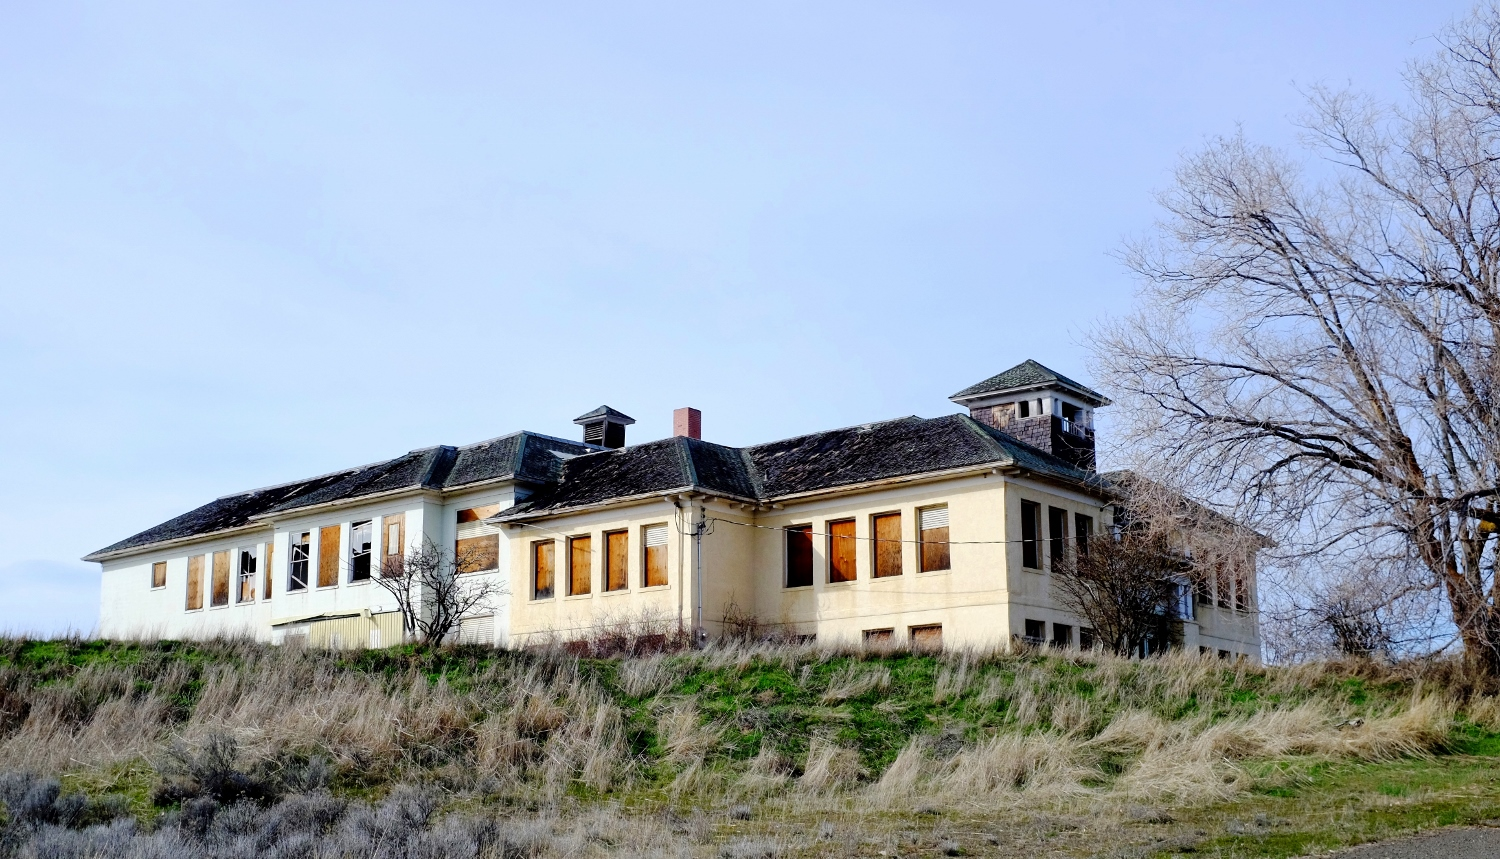 26 old abandoned buildings in oregon that 39 ll amaze you for Building a house in oregon